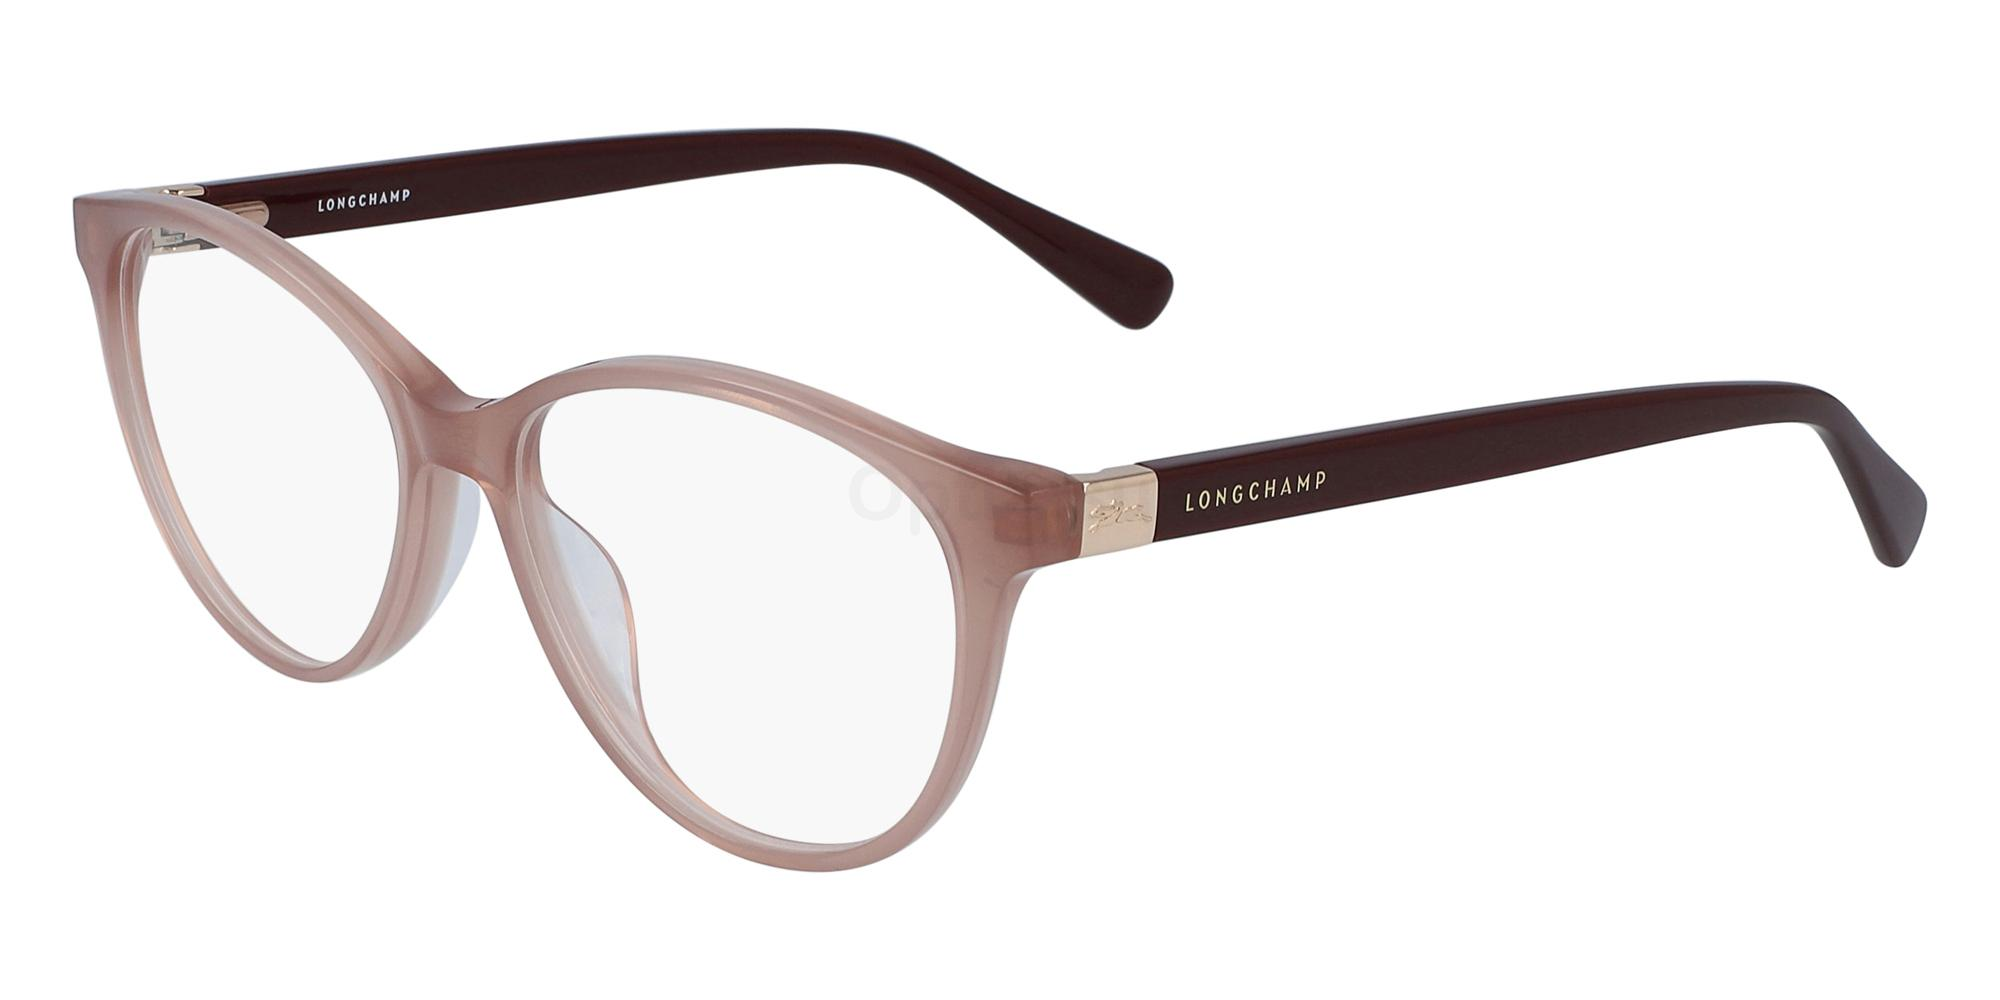 615 LO2648 Glasses, LONGCHAMP